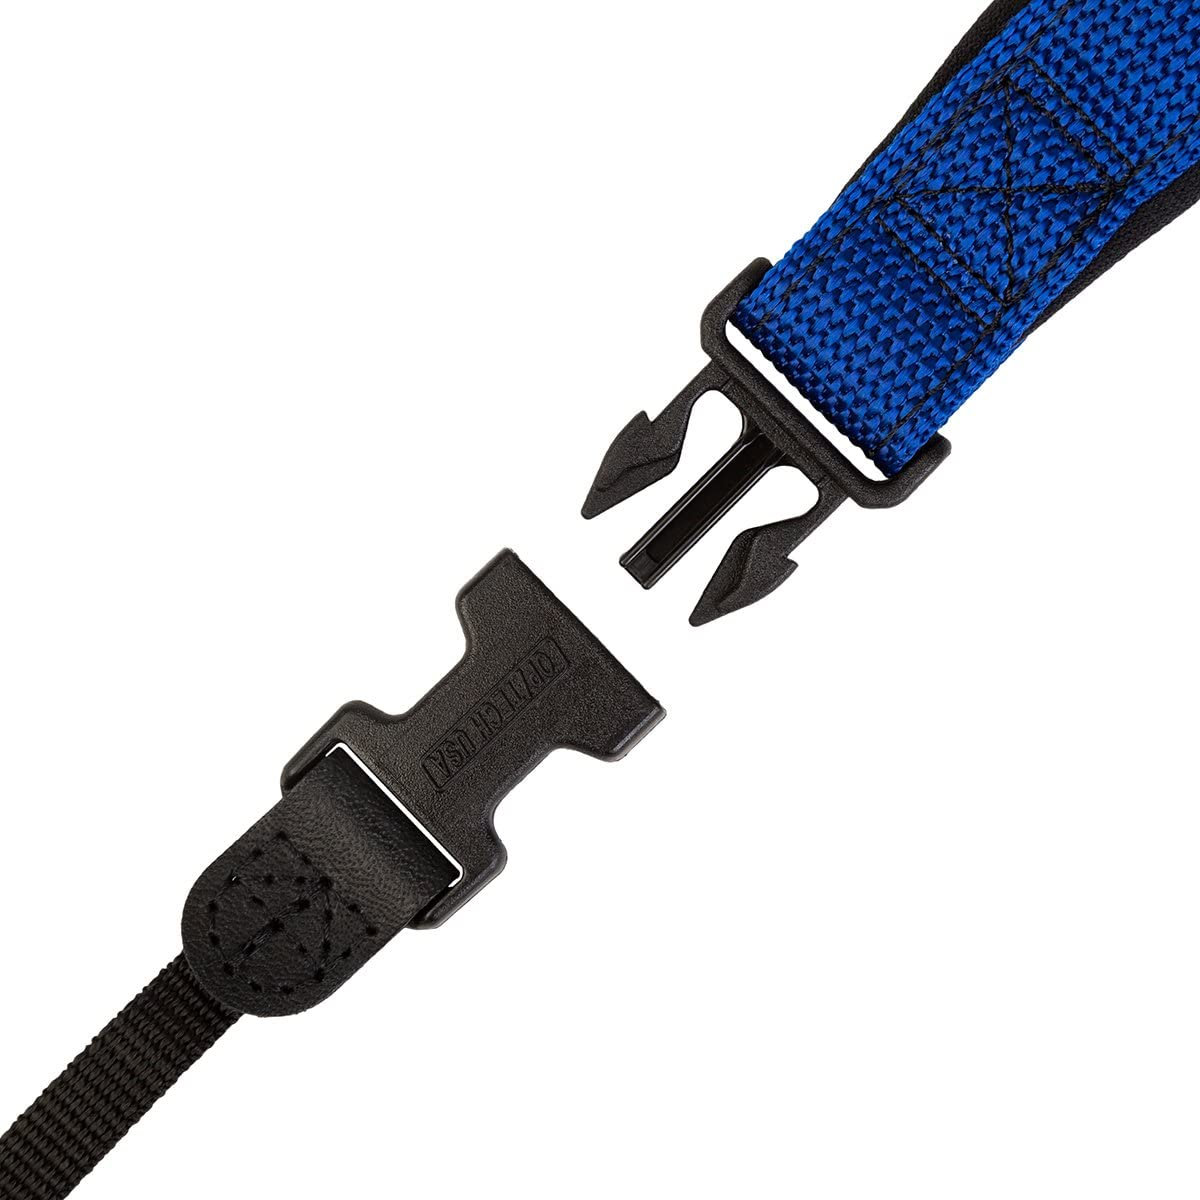 OP//TECH USA Envy Strap Black 3801332 Camera Neck Strap New UK Stock